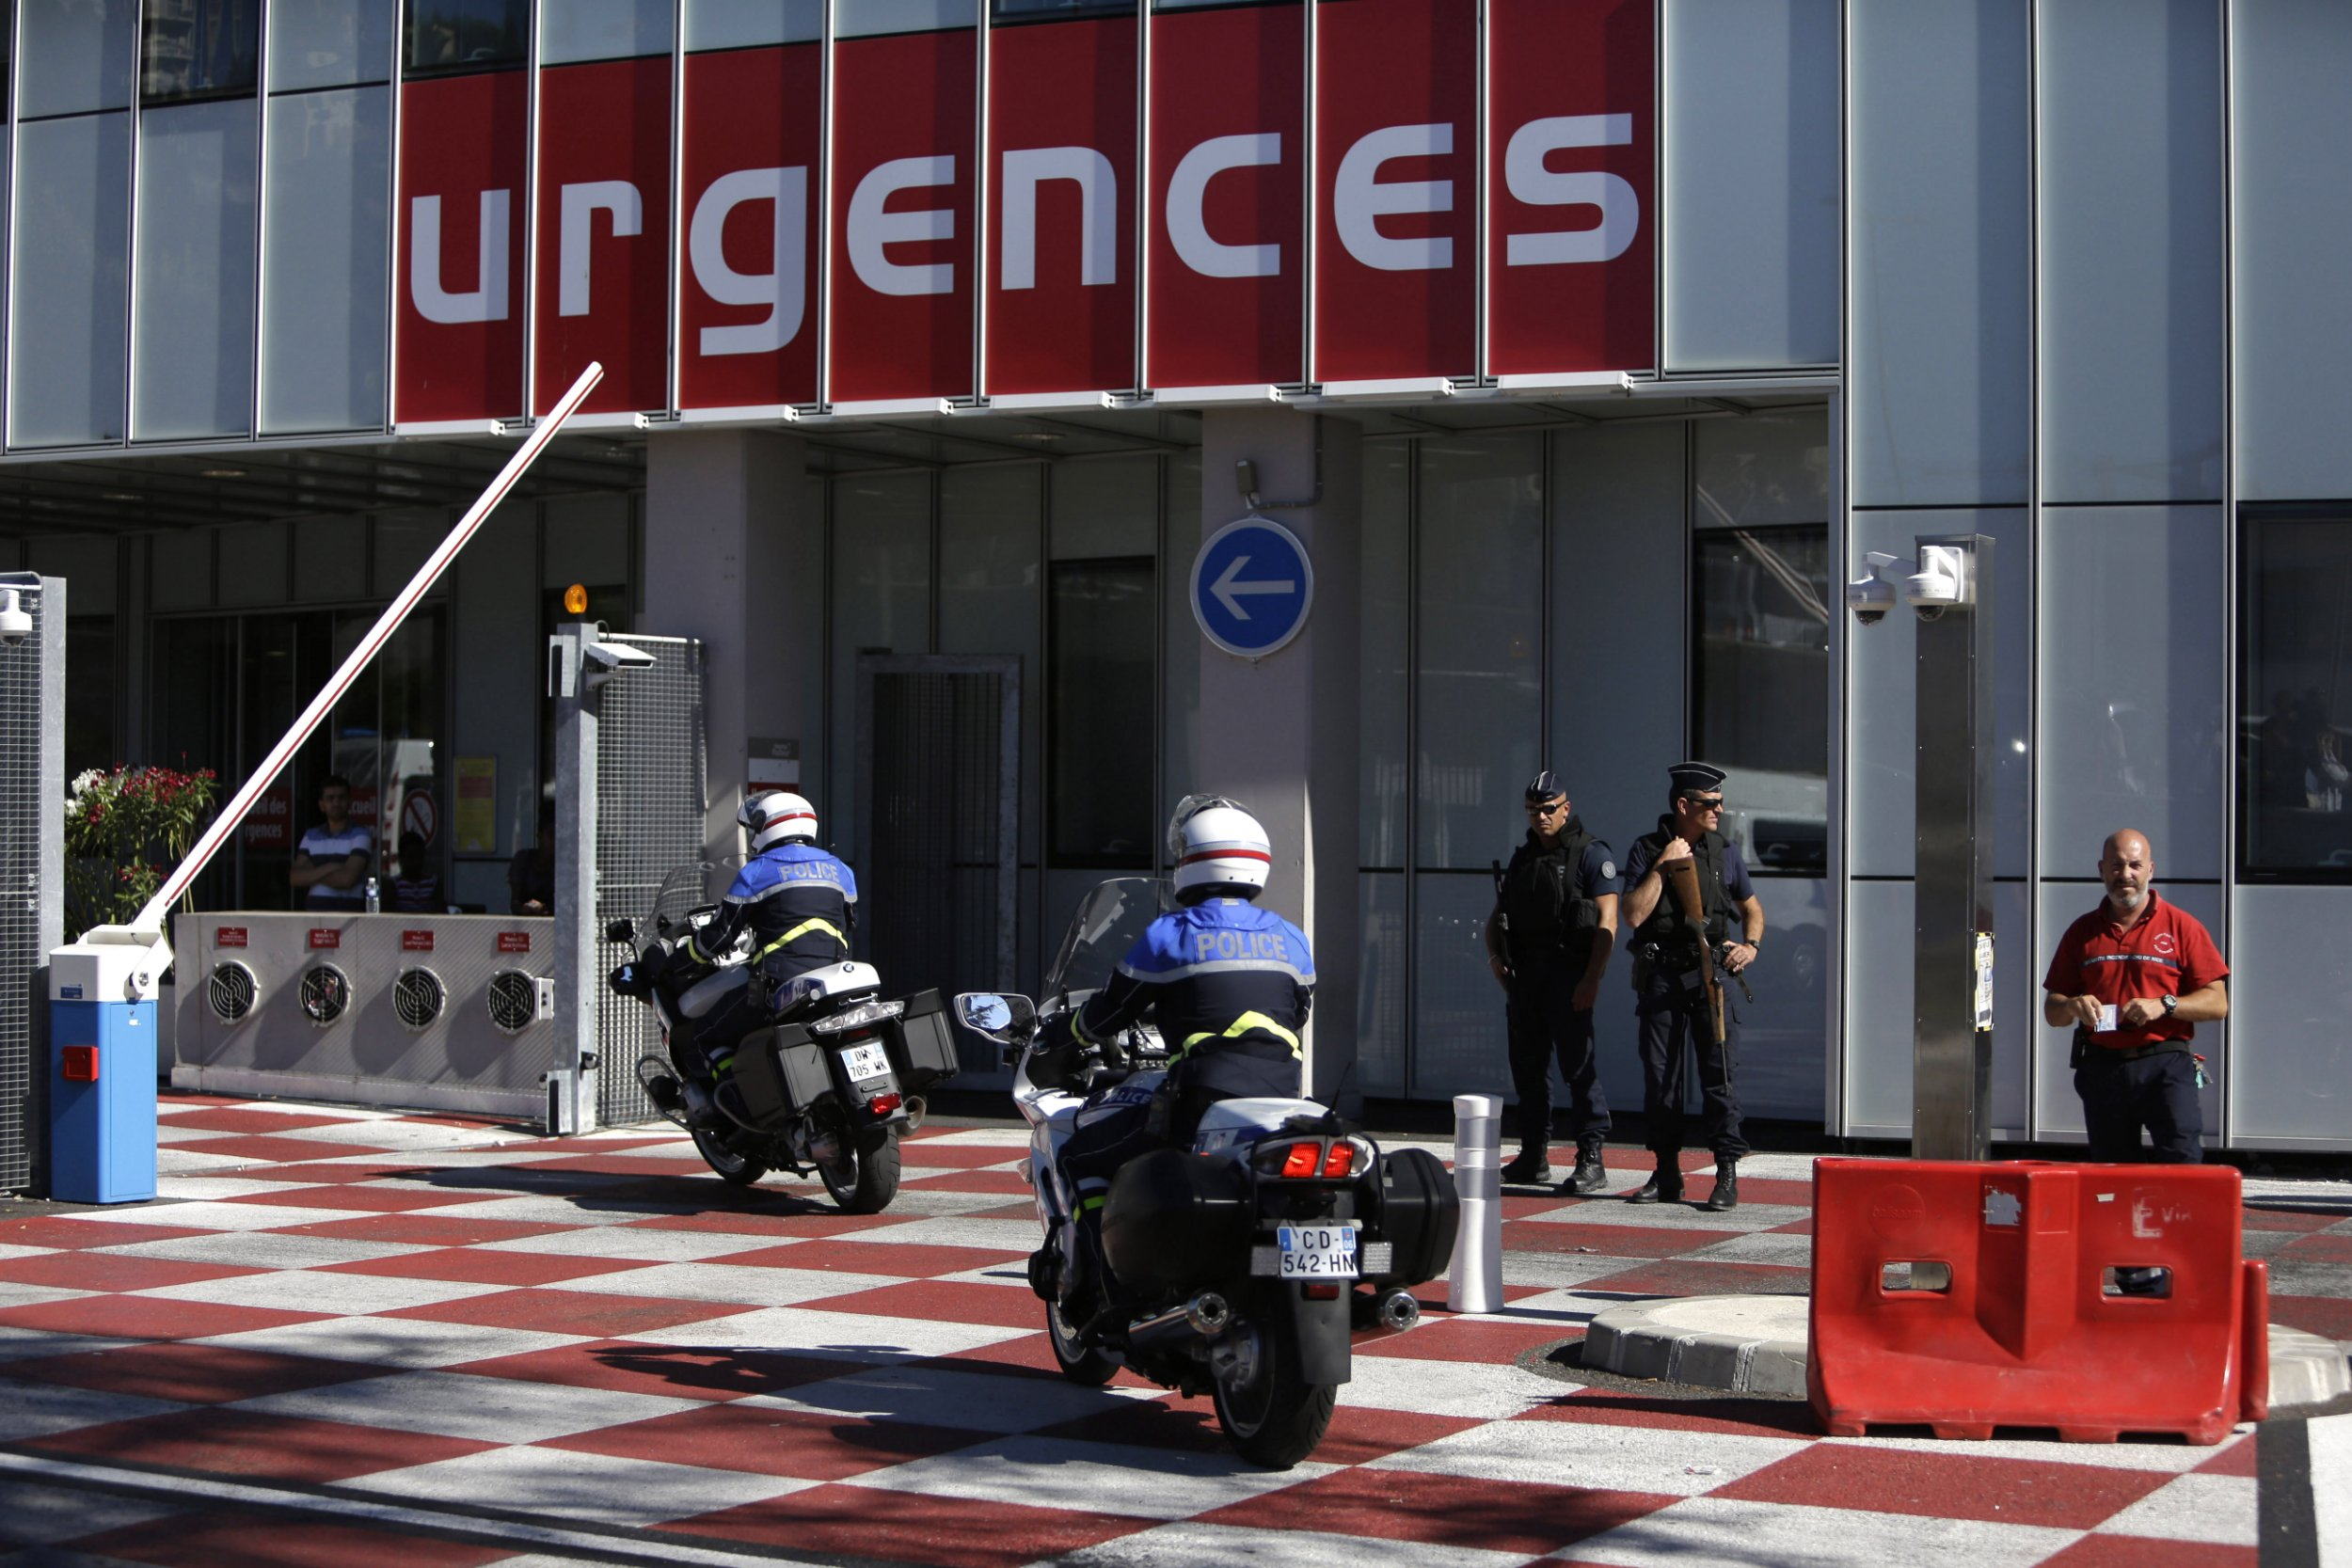 Child among 18 people still in life-threatening condition following Nice terror attack